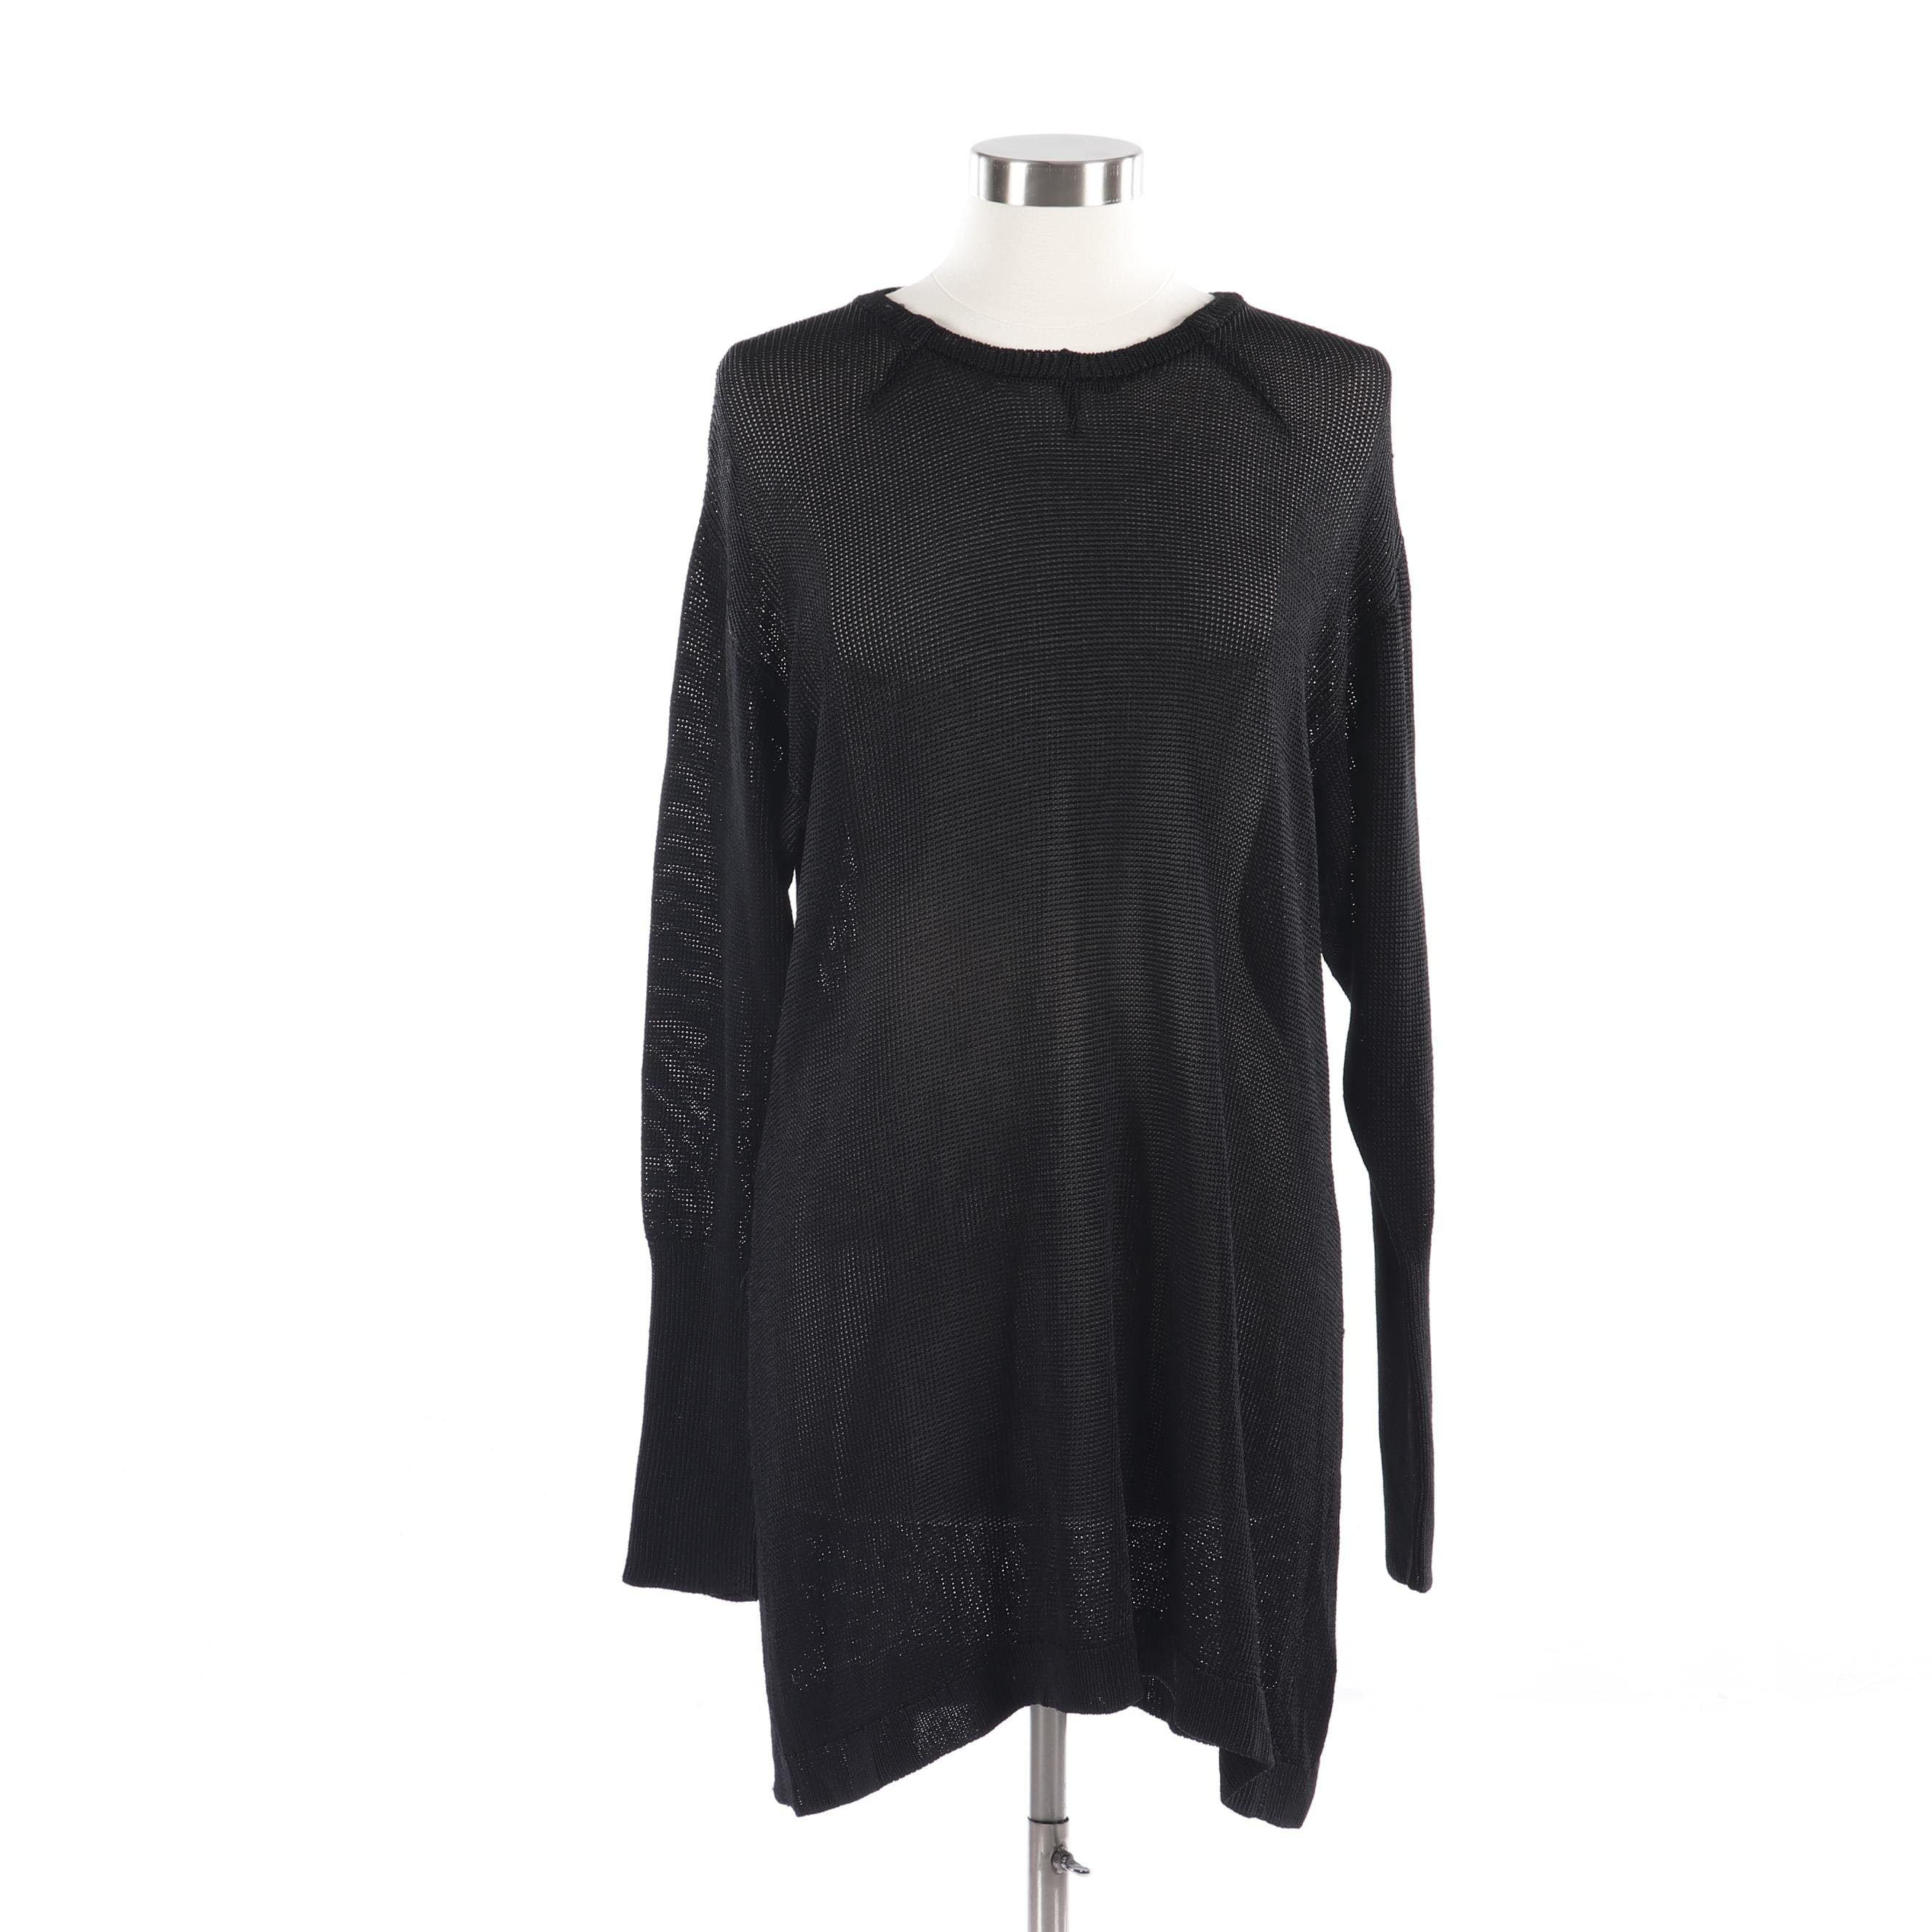 Women's Black Knit Tunic Style Long Sleeve Top